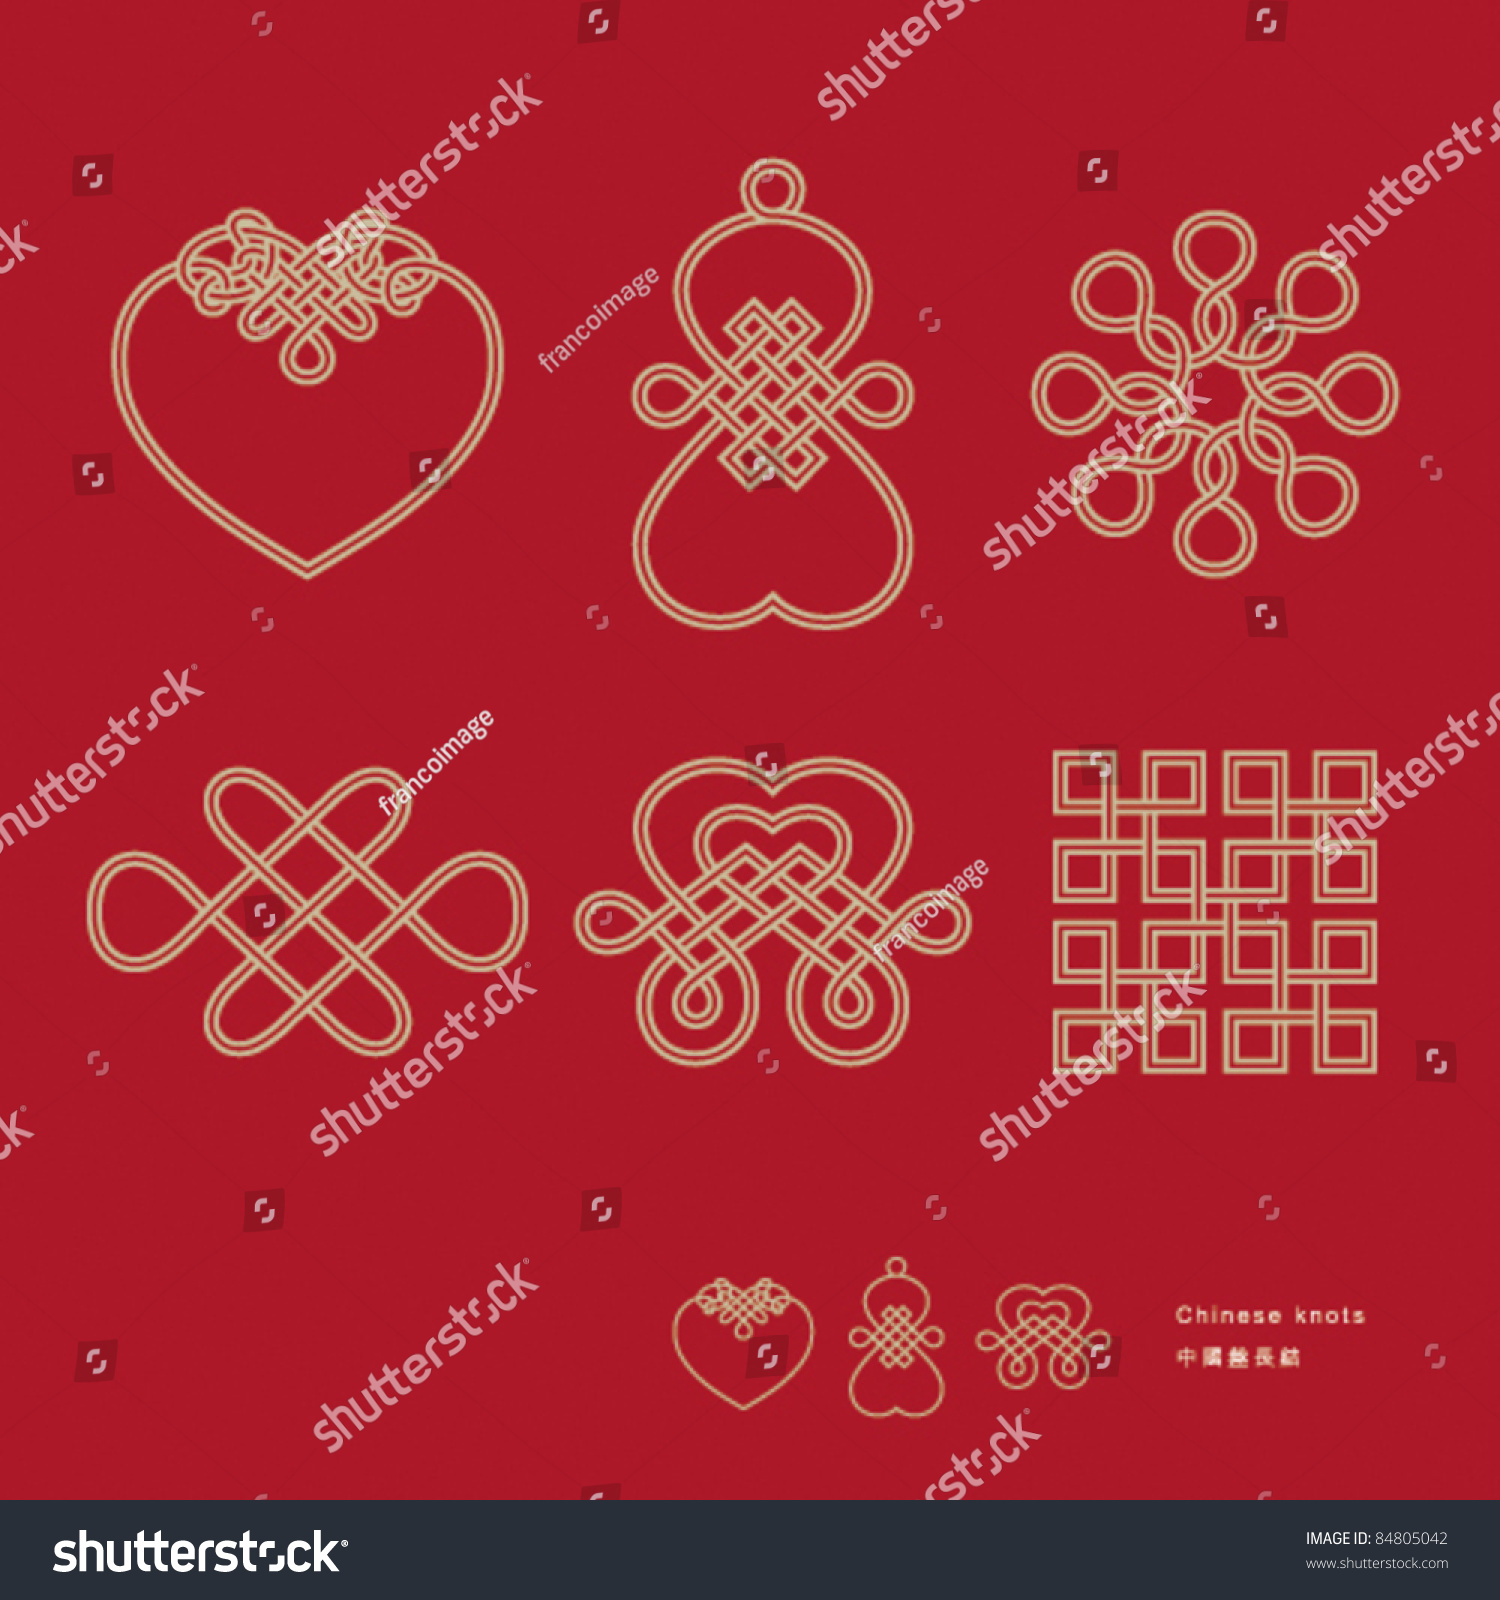 Traditional Chinese Lucky Knots Representing Meaning Stock Vector